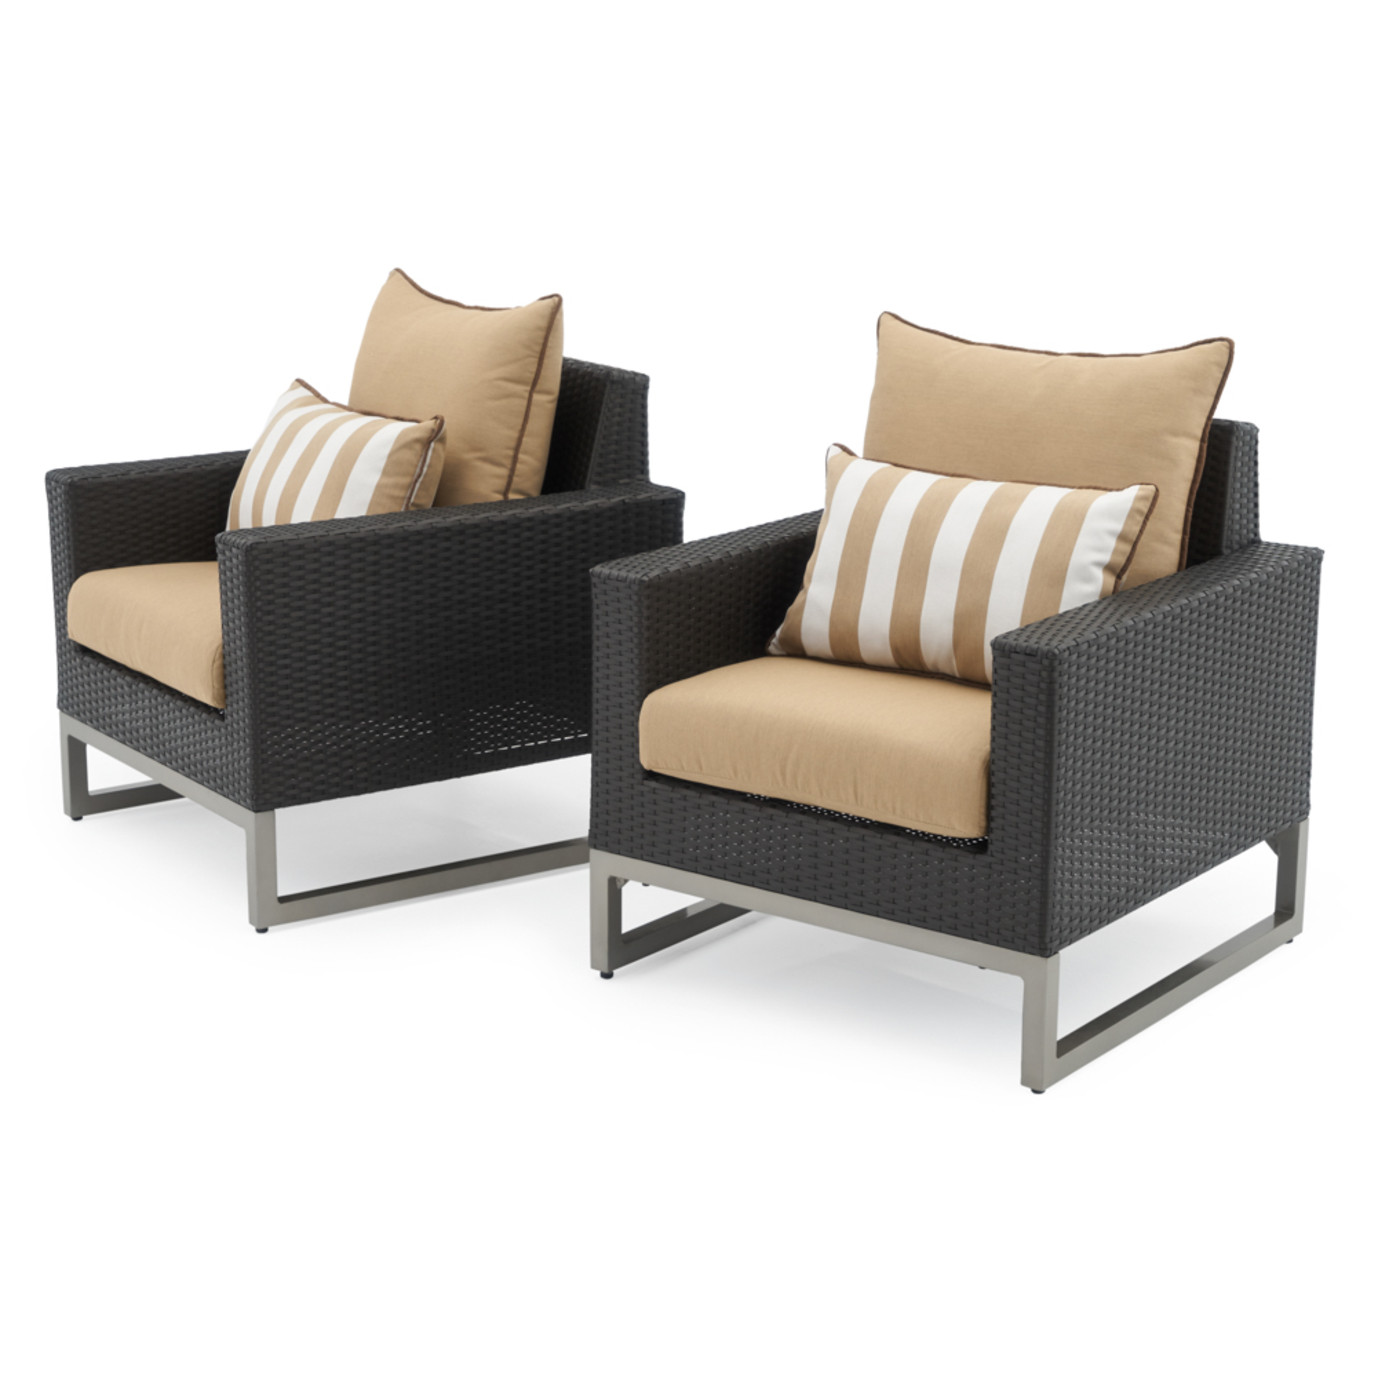 Milo™ Espresso Club Chairs - Maxim Beige